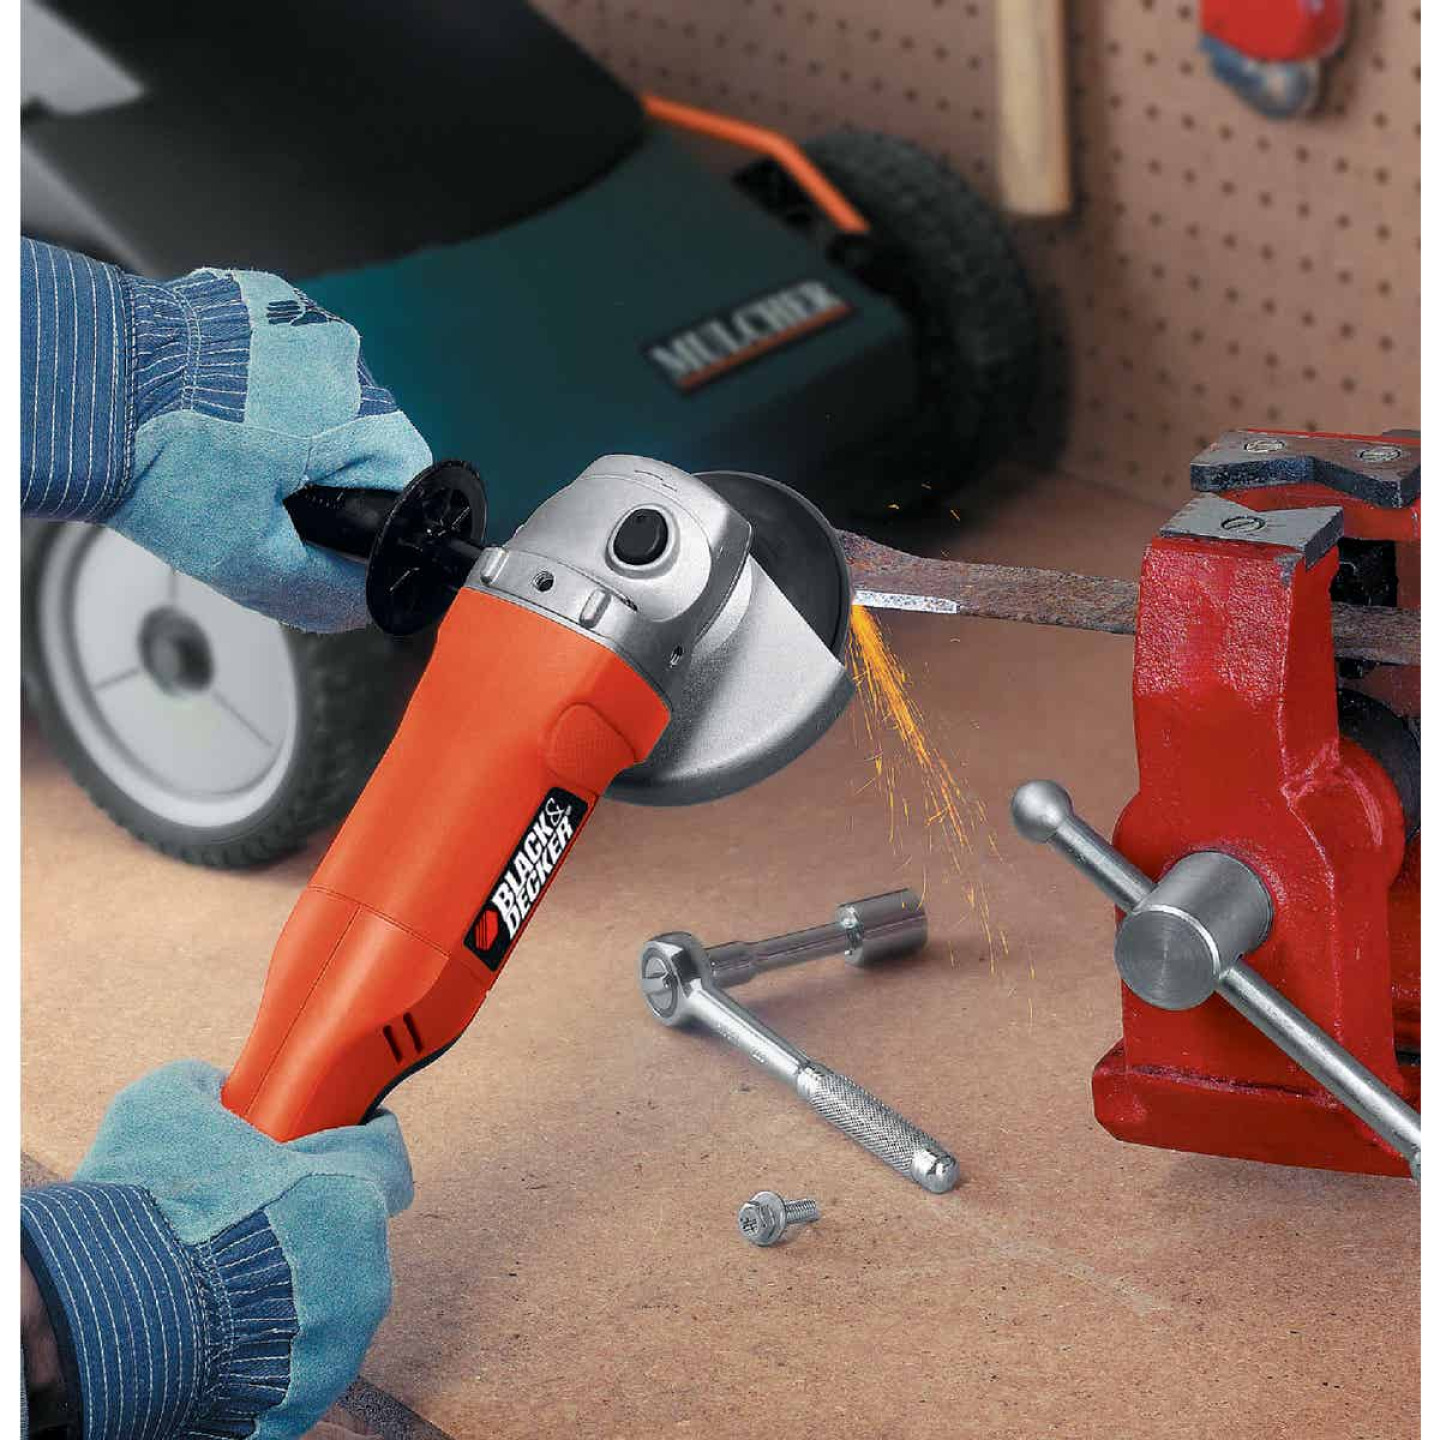 Black & Decker 4-1/2 In. 8.5-Amp Angle Grinder Image 4